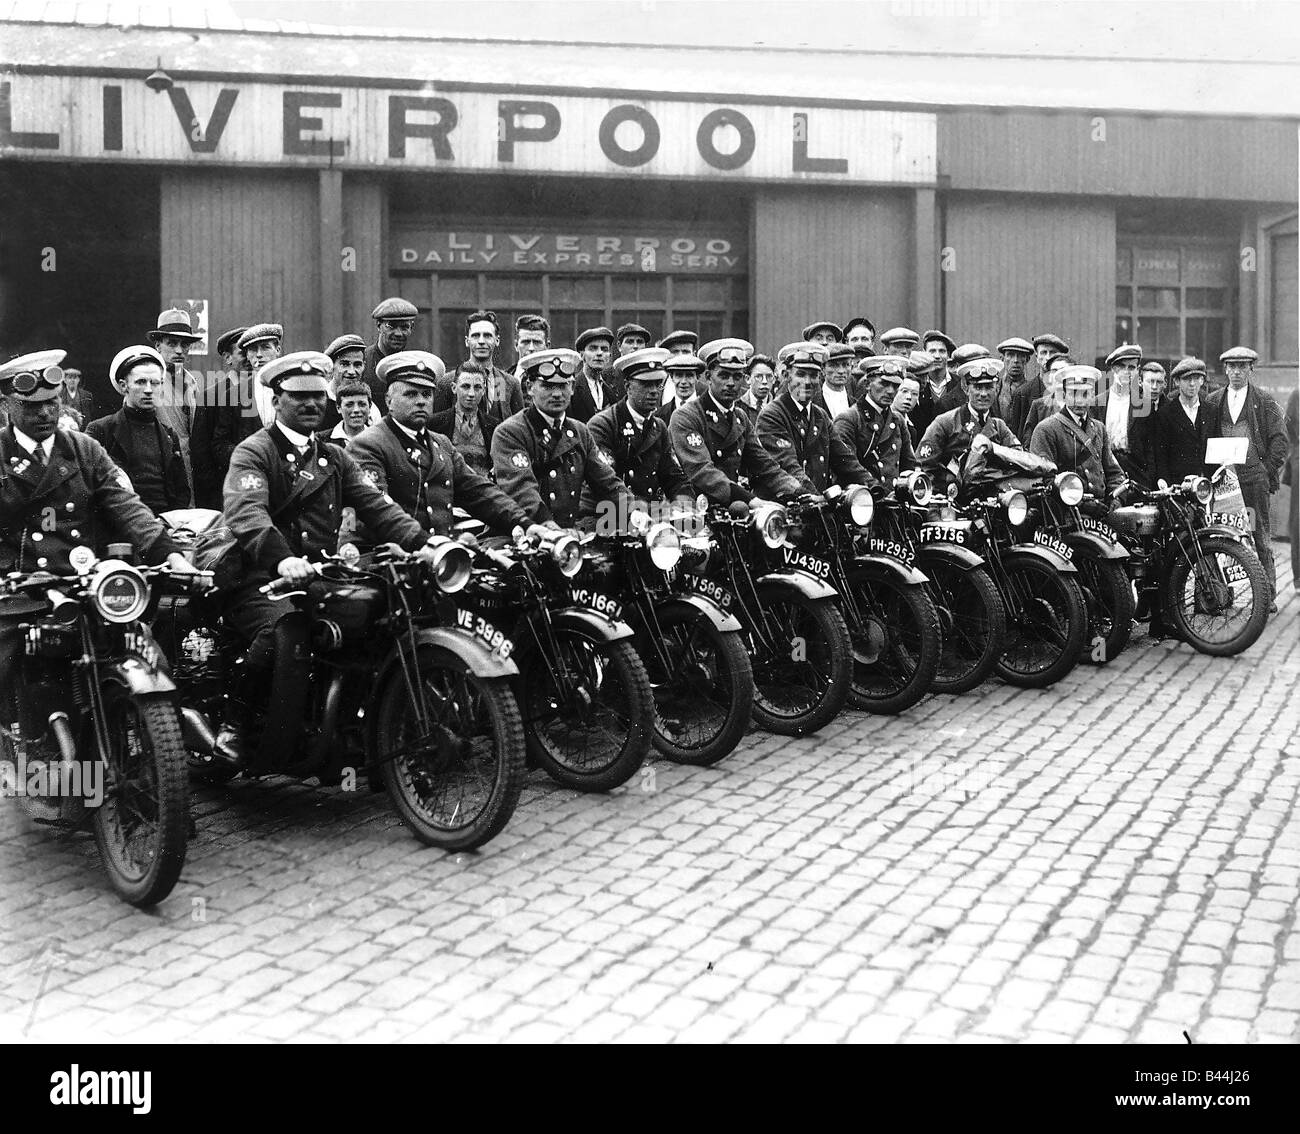 RAC Scouts August 1932 who will be keeping control of traffic congestion at the Ulster TT Race Transport Motorbikes - Stock Image